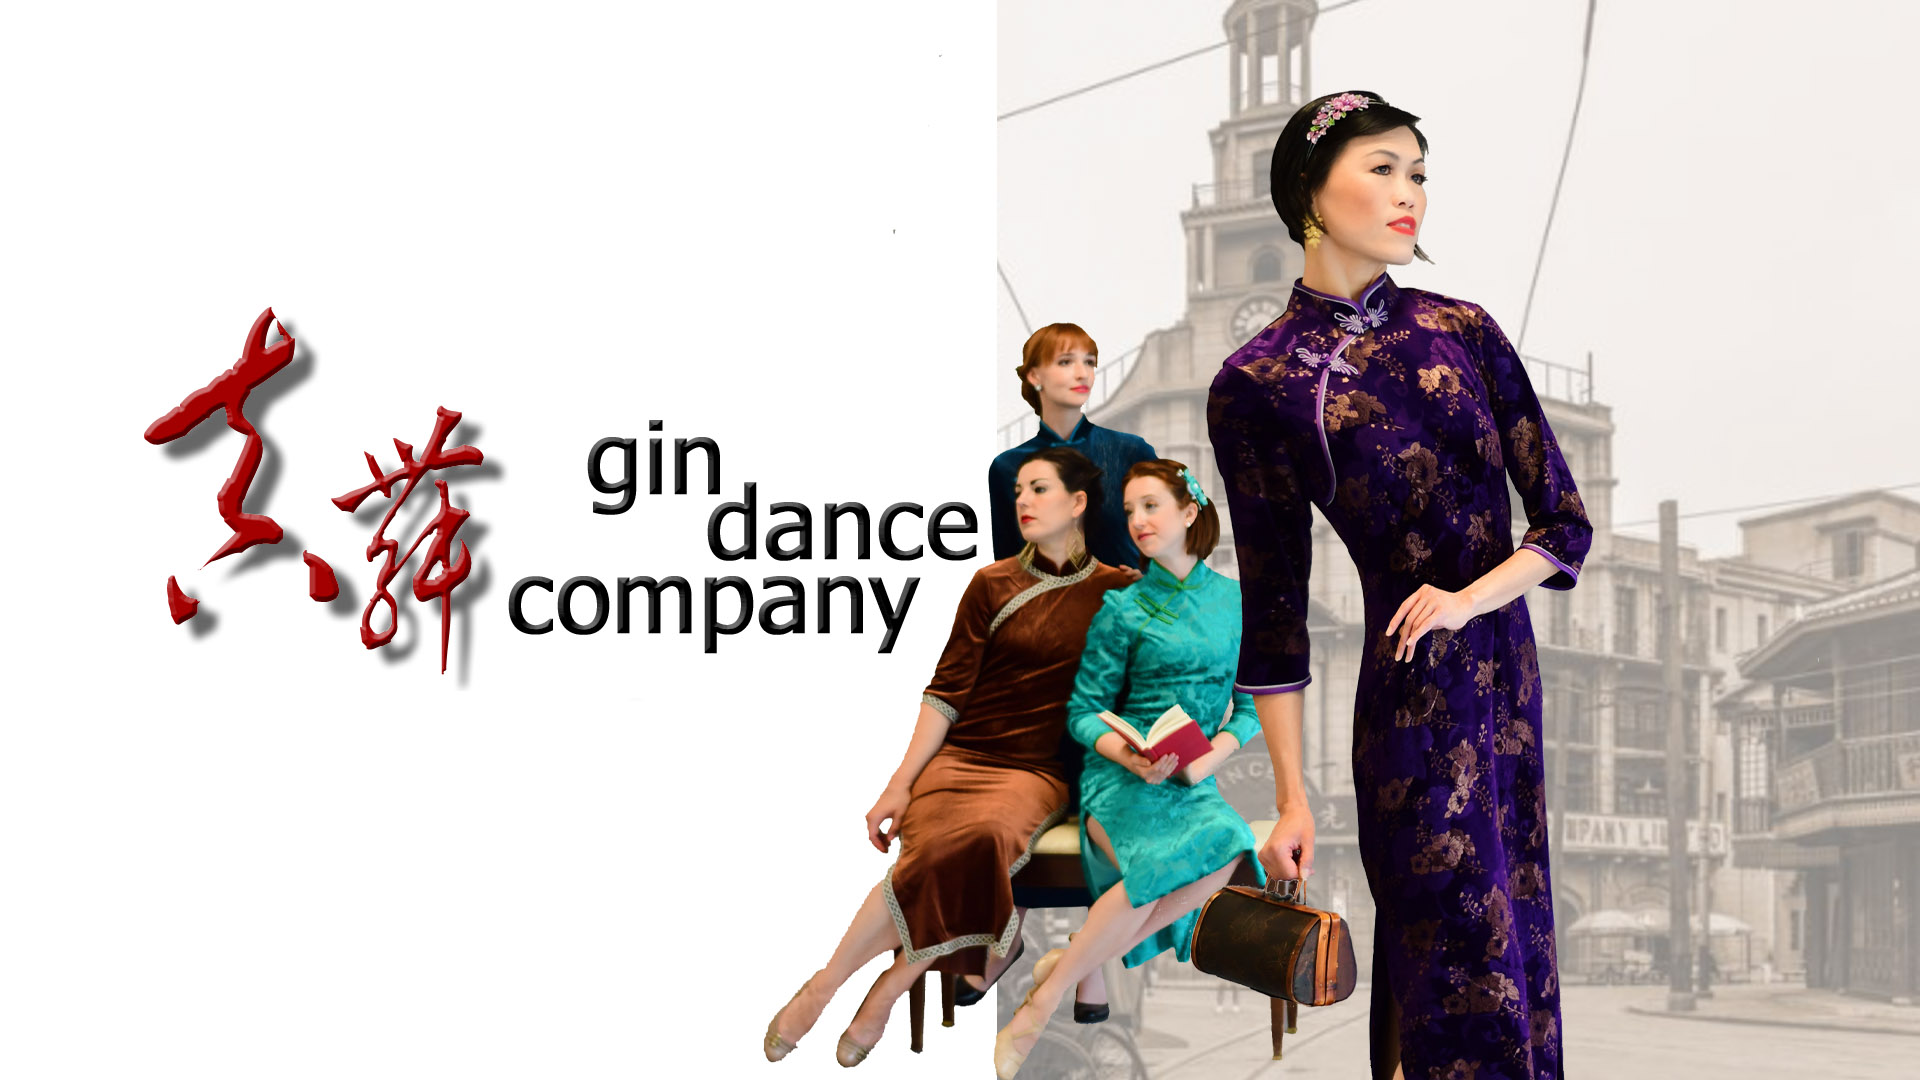 gin, gin dance, gin dance company, capital one hall, capital one center, things to do in DC, Tysons, dance, company, dance company